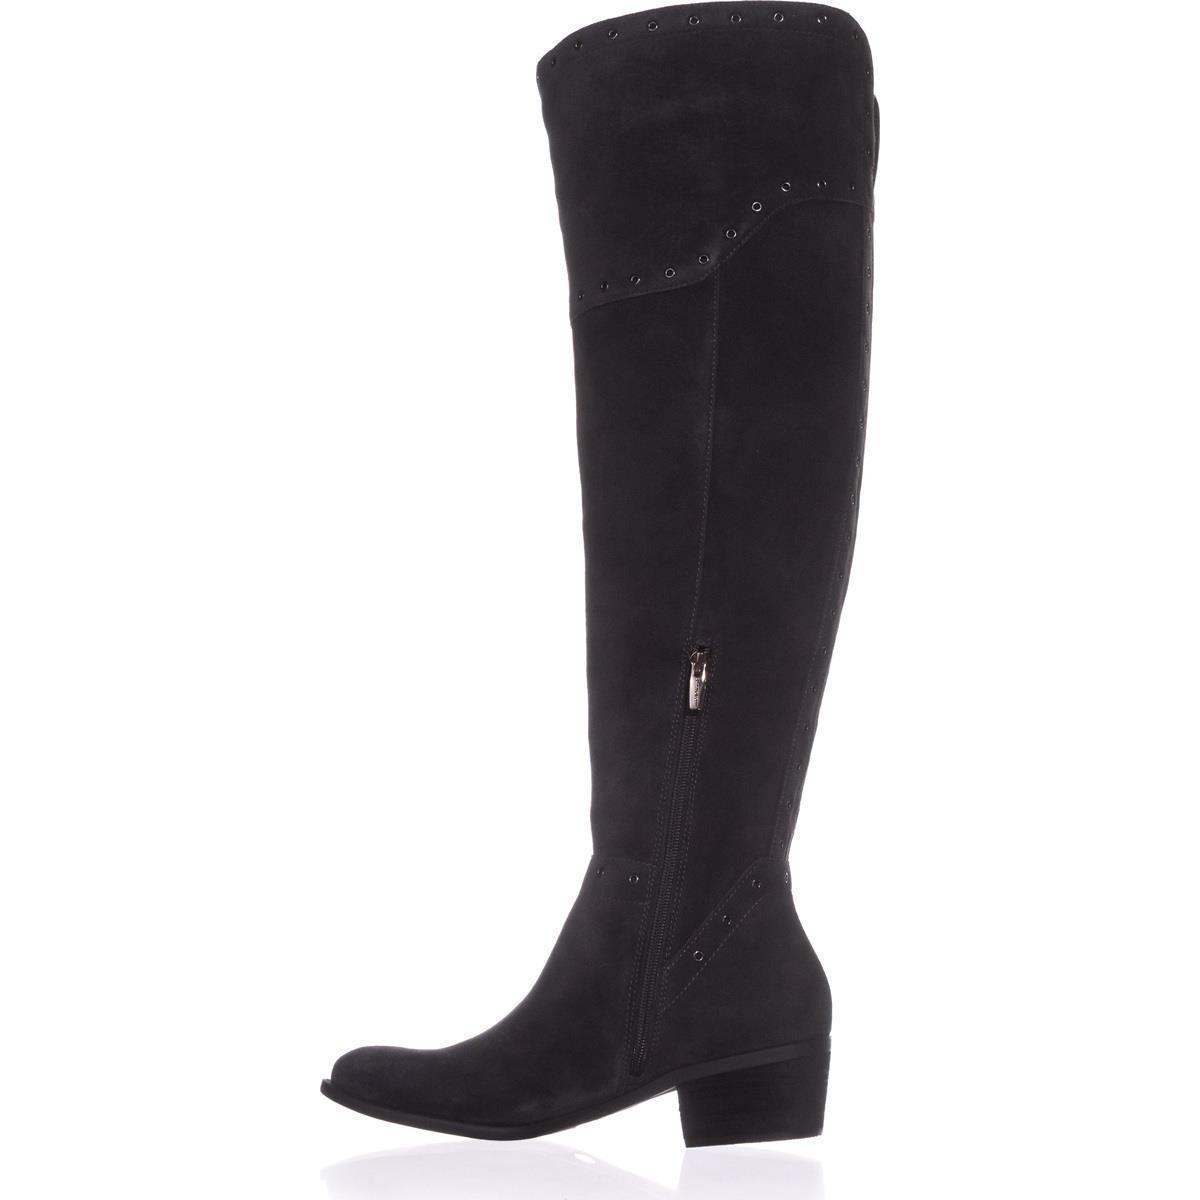 Vince Camuto Bestan Wide Calf Over The Knee Boots Granite